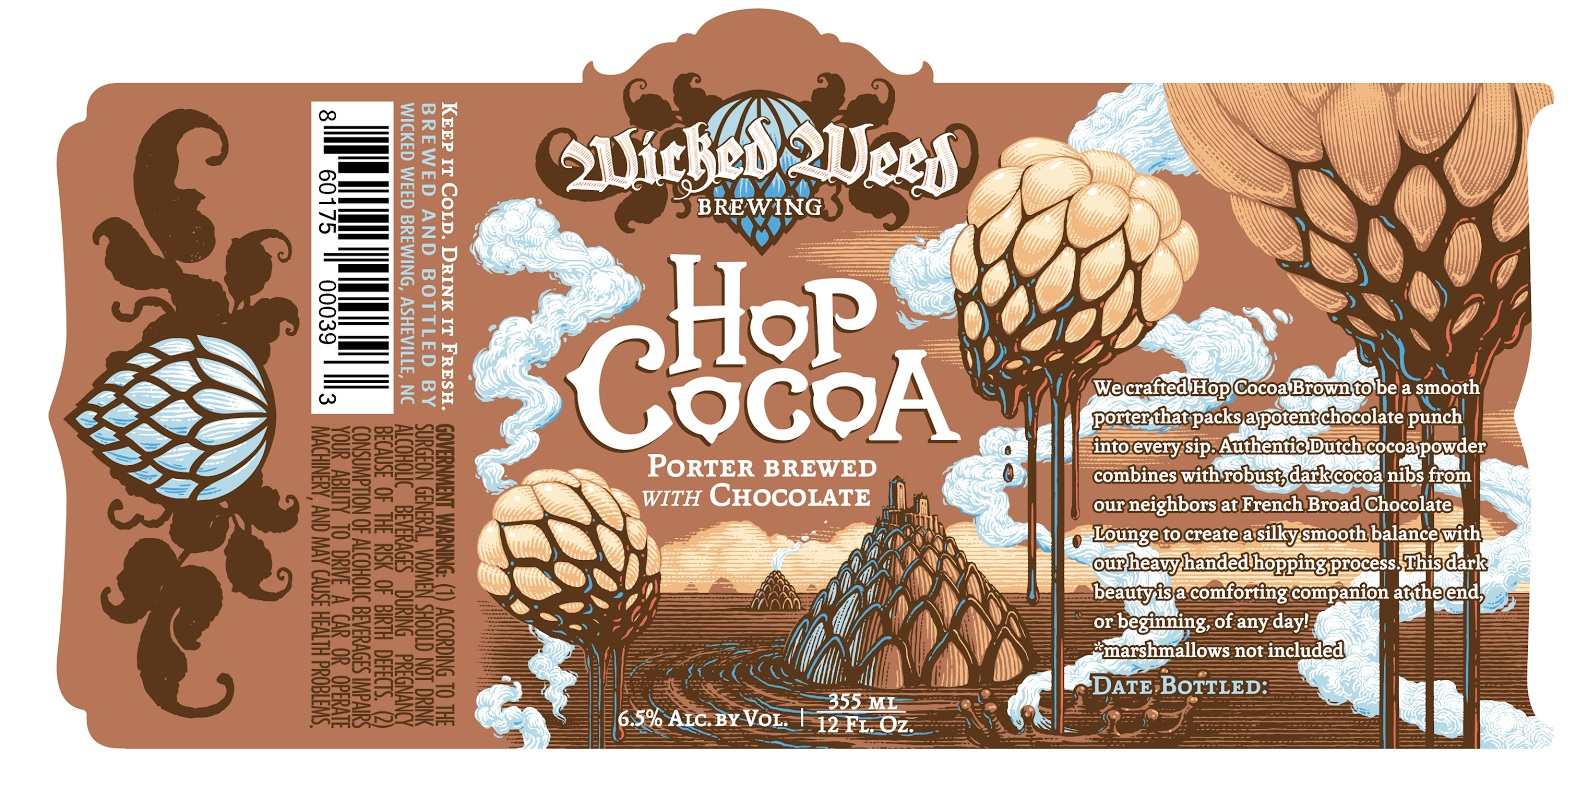 Wicked Weed Hop Cocoa, with French Broad Chocolate - Beer Street ...